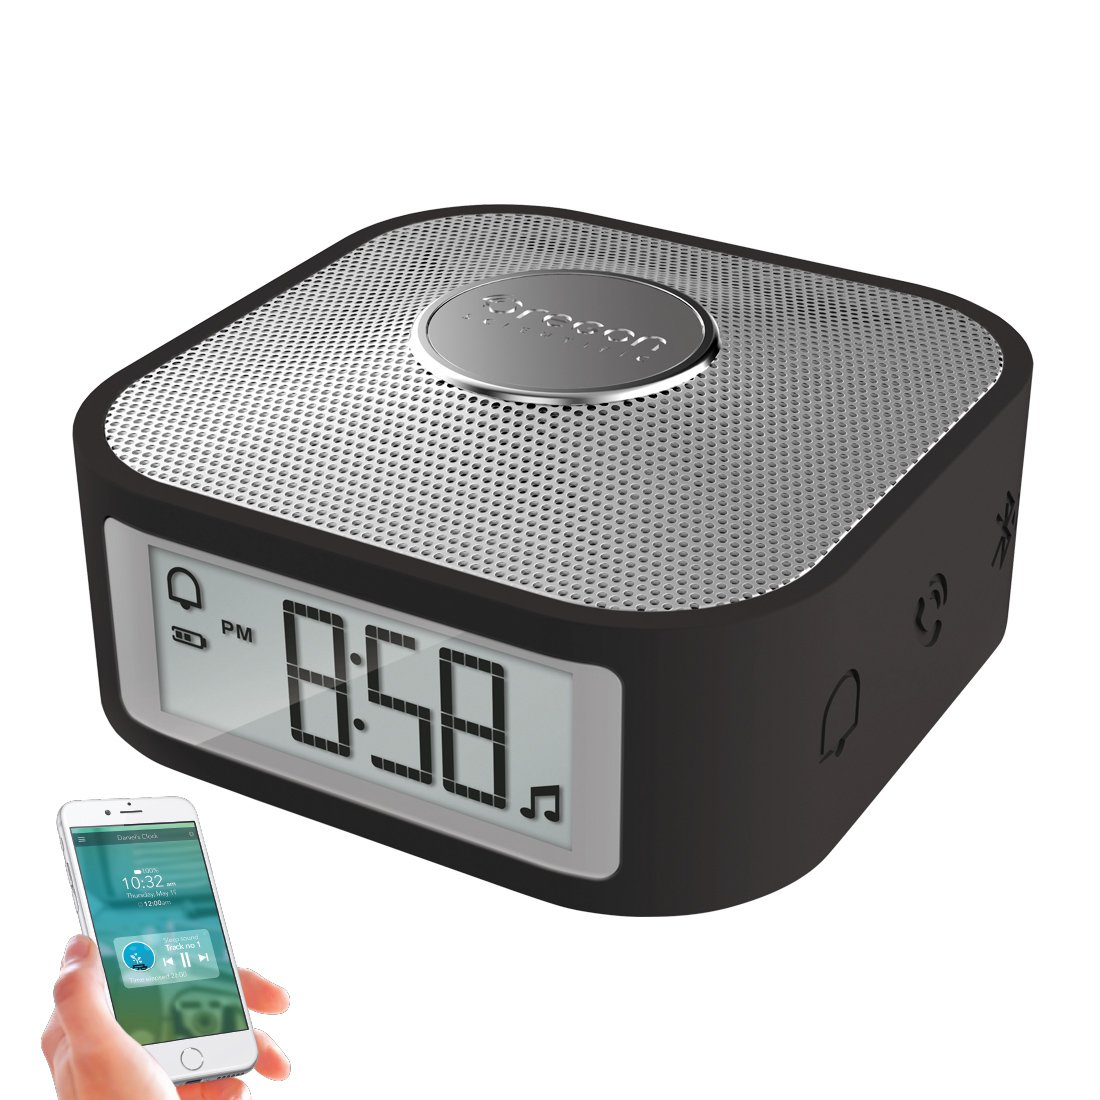 Digital Travel Clock with USB Charging Port for Heavy Sleepers, Portable Alarm Clock with Bluetooth Speaker (Black)